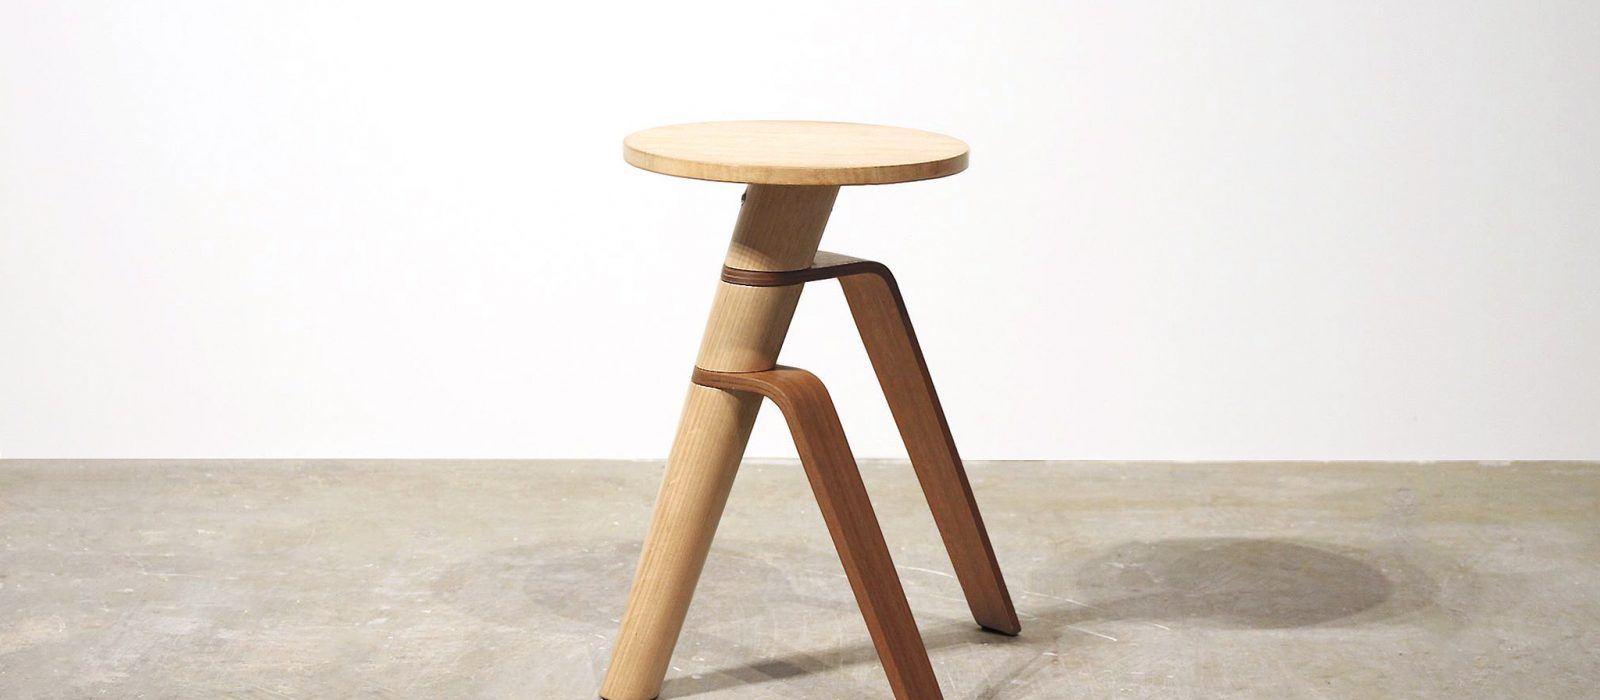 George Shvili, AWRY Stool/ side table, 2019. Photo: courtesy of the artist.